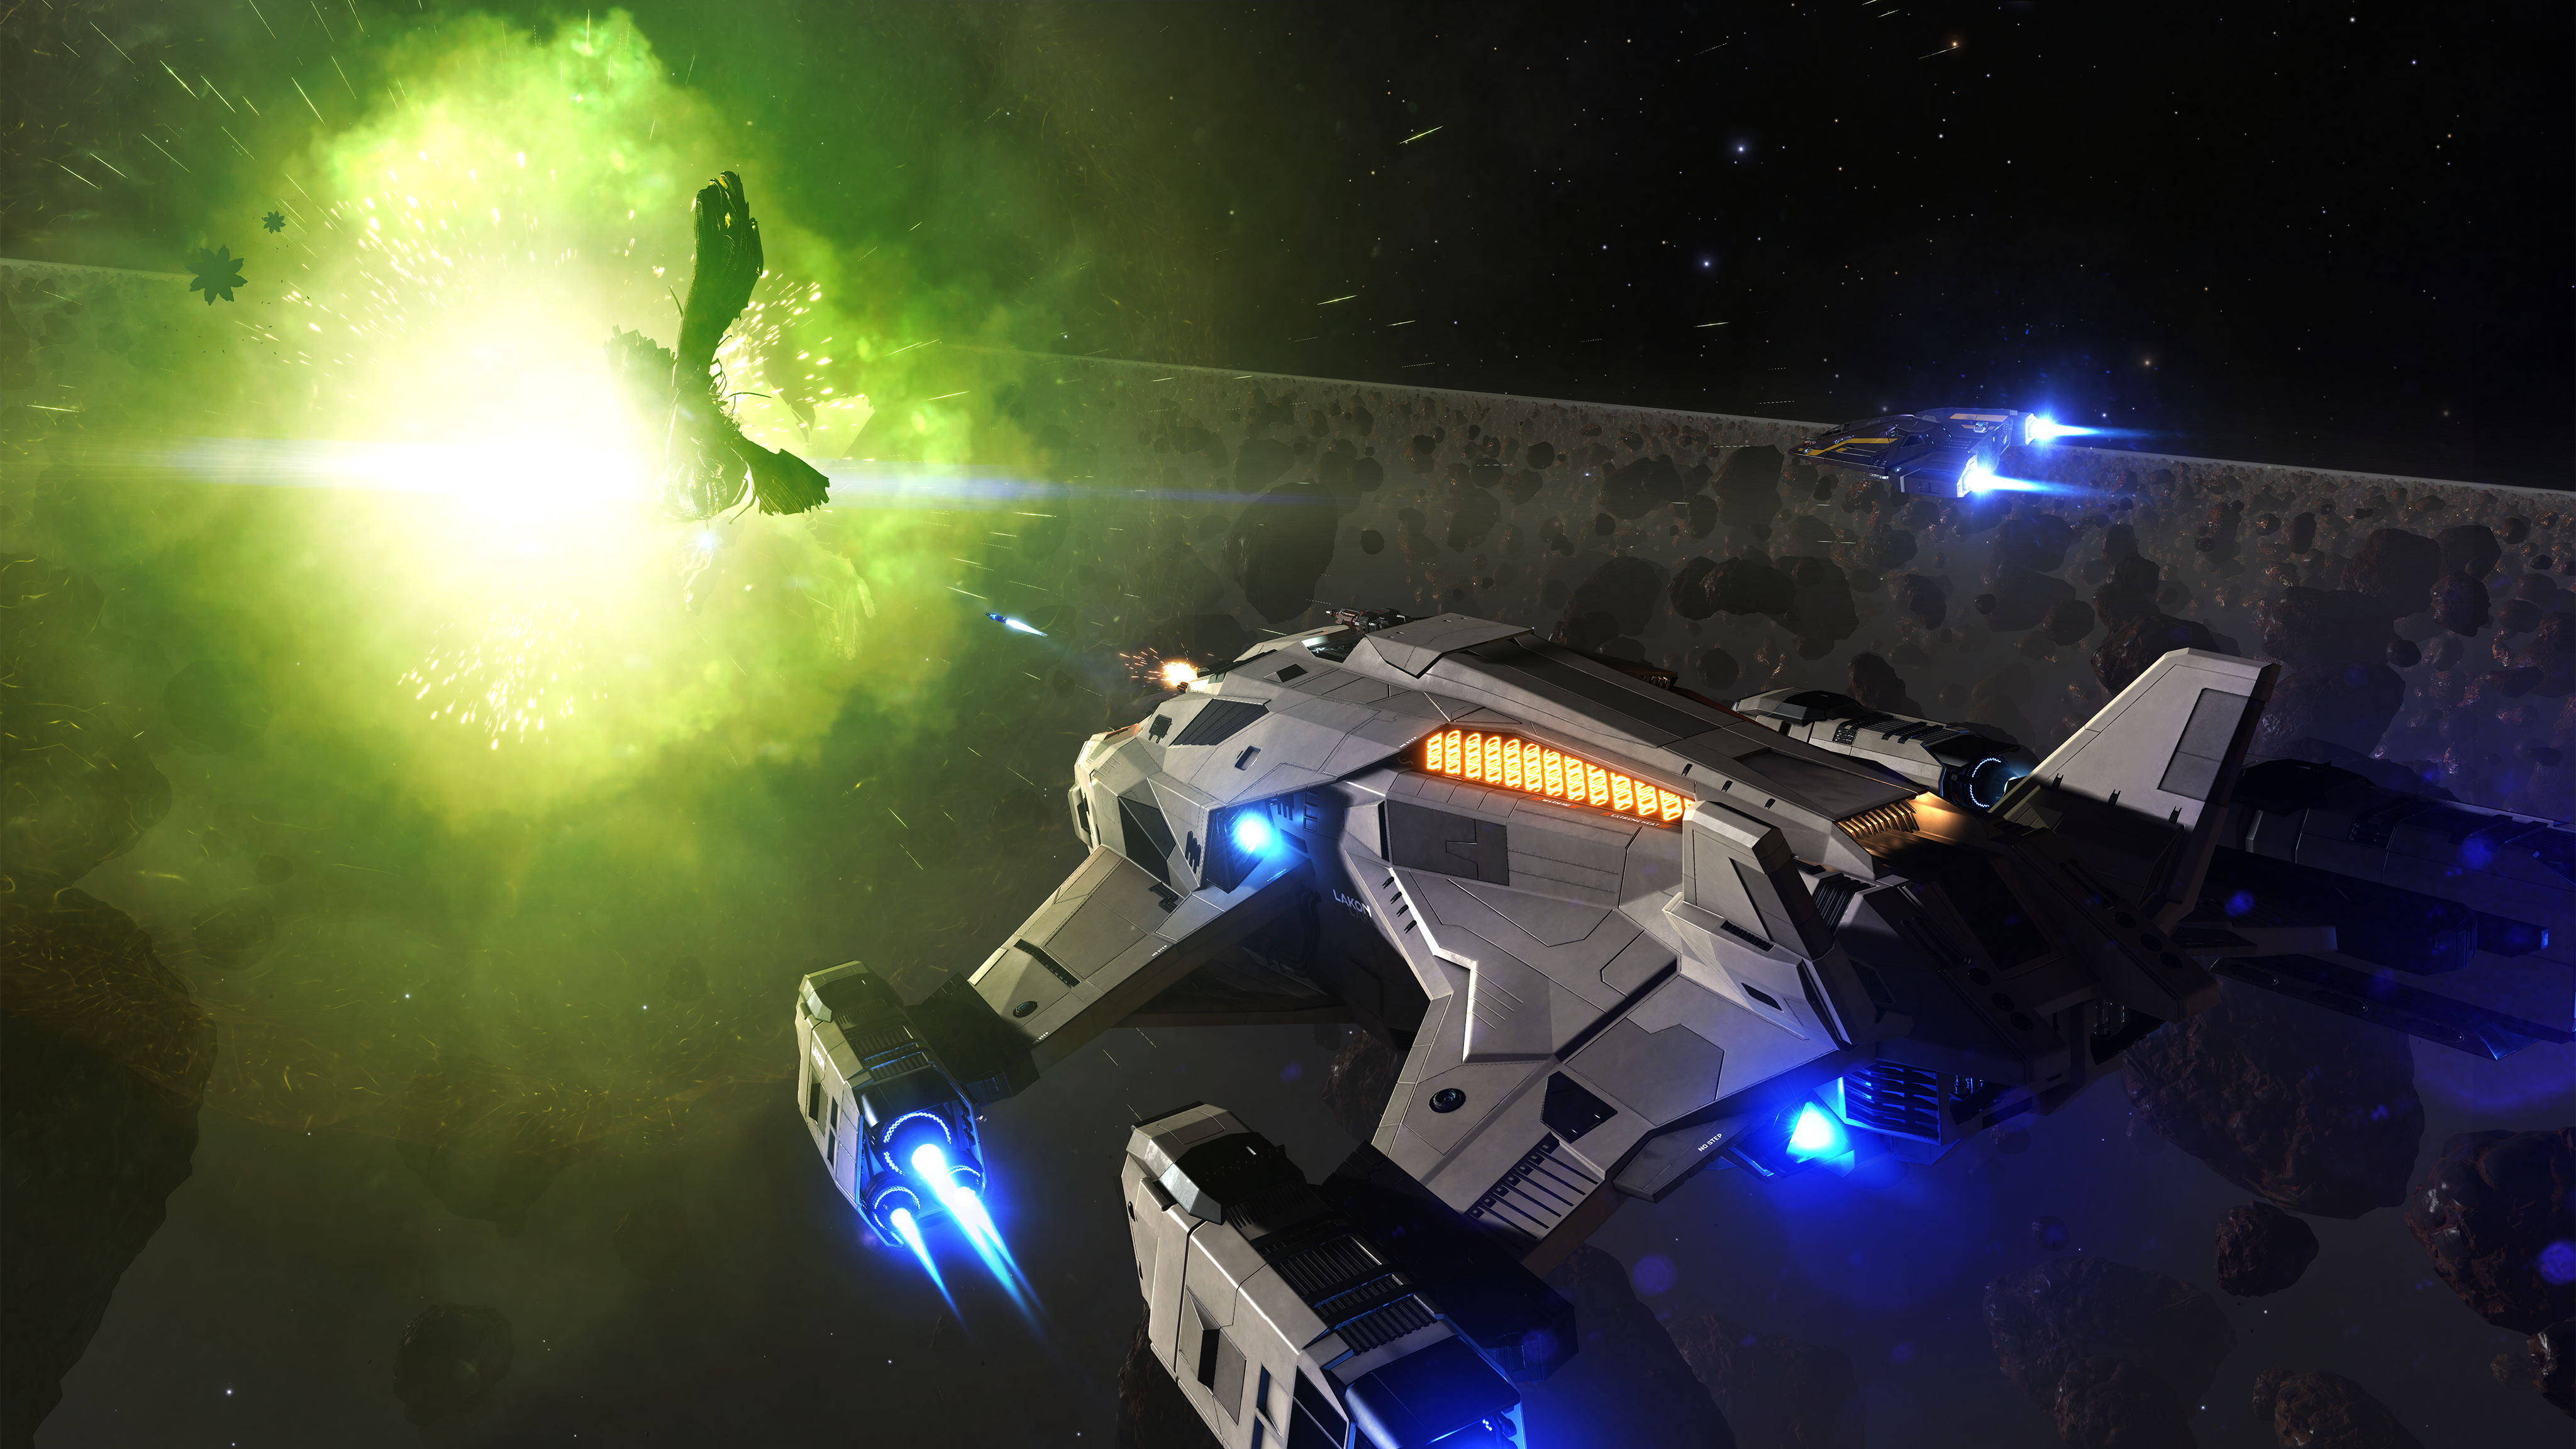 Best Ship Elite Dangerous 2020 Elite Dangerous isn't getting another major update until 2020 | PC